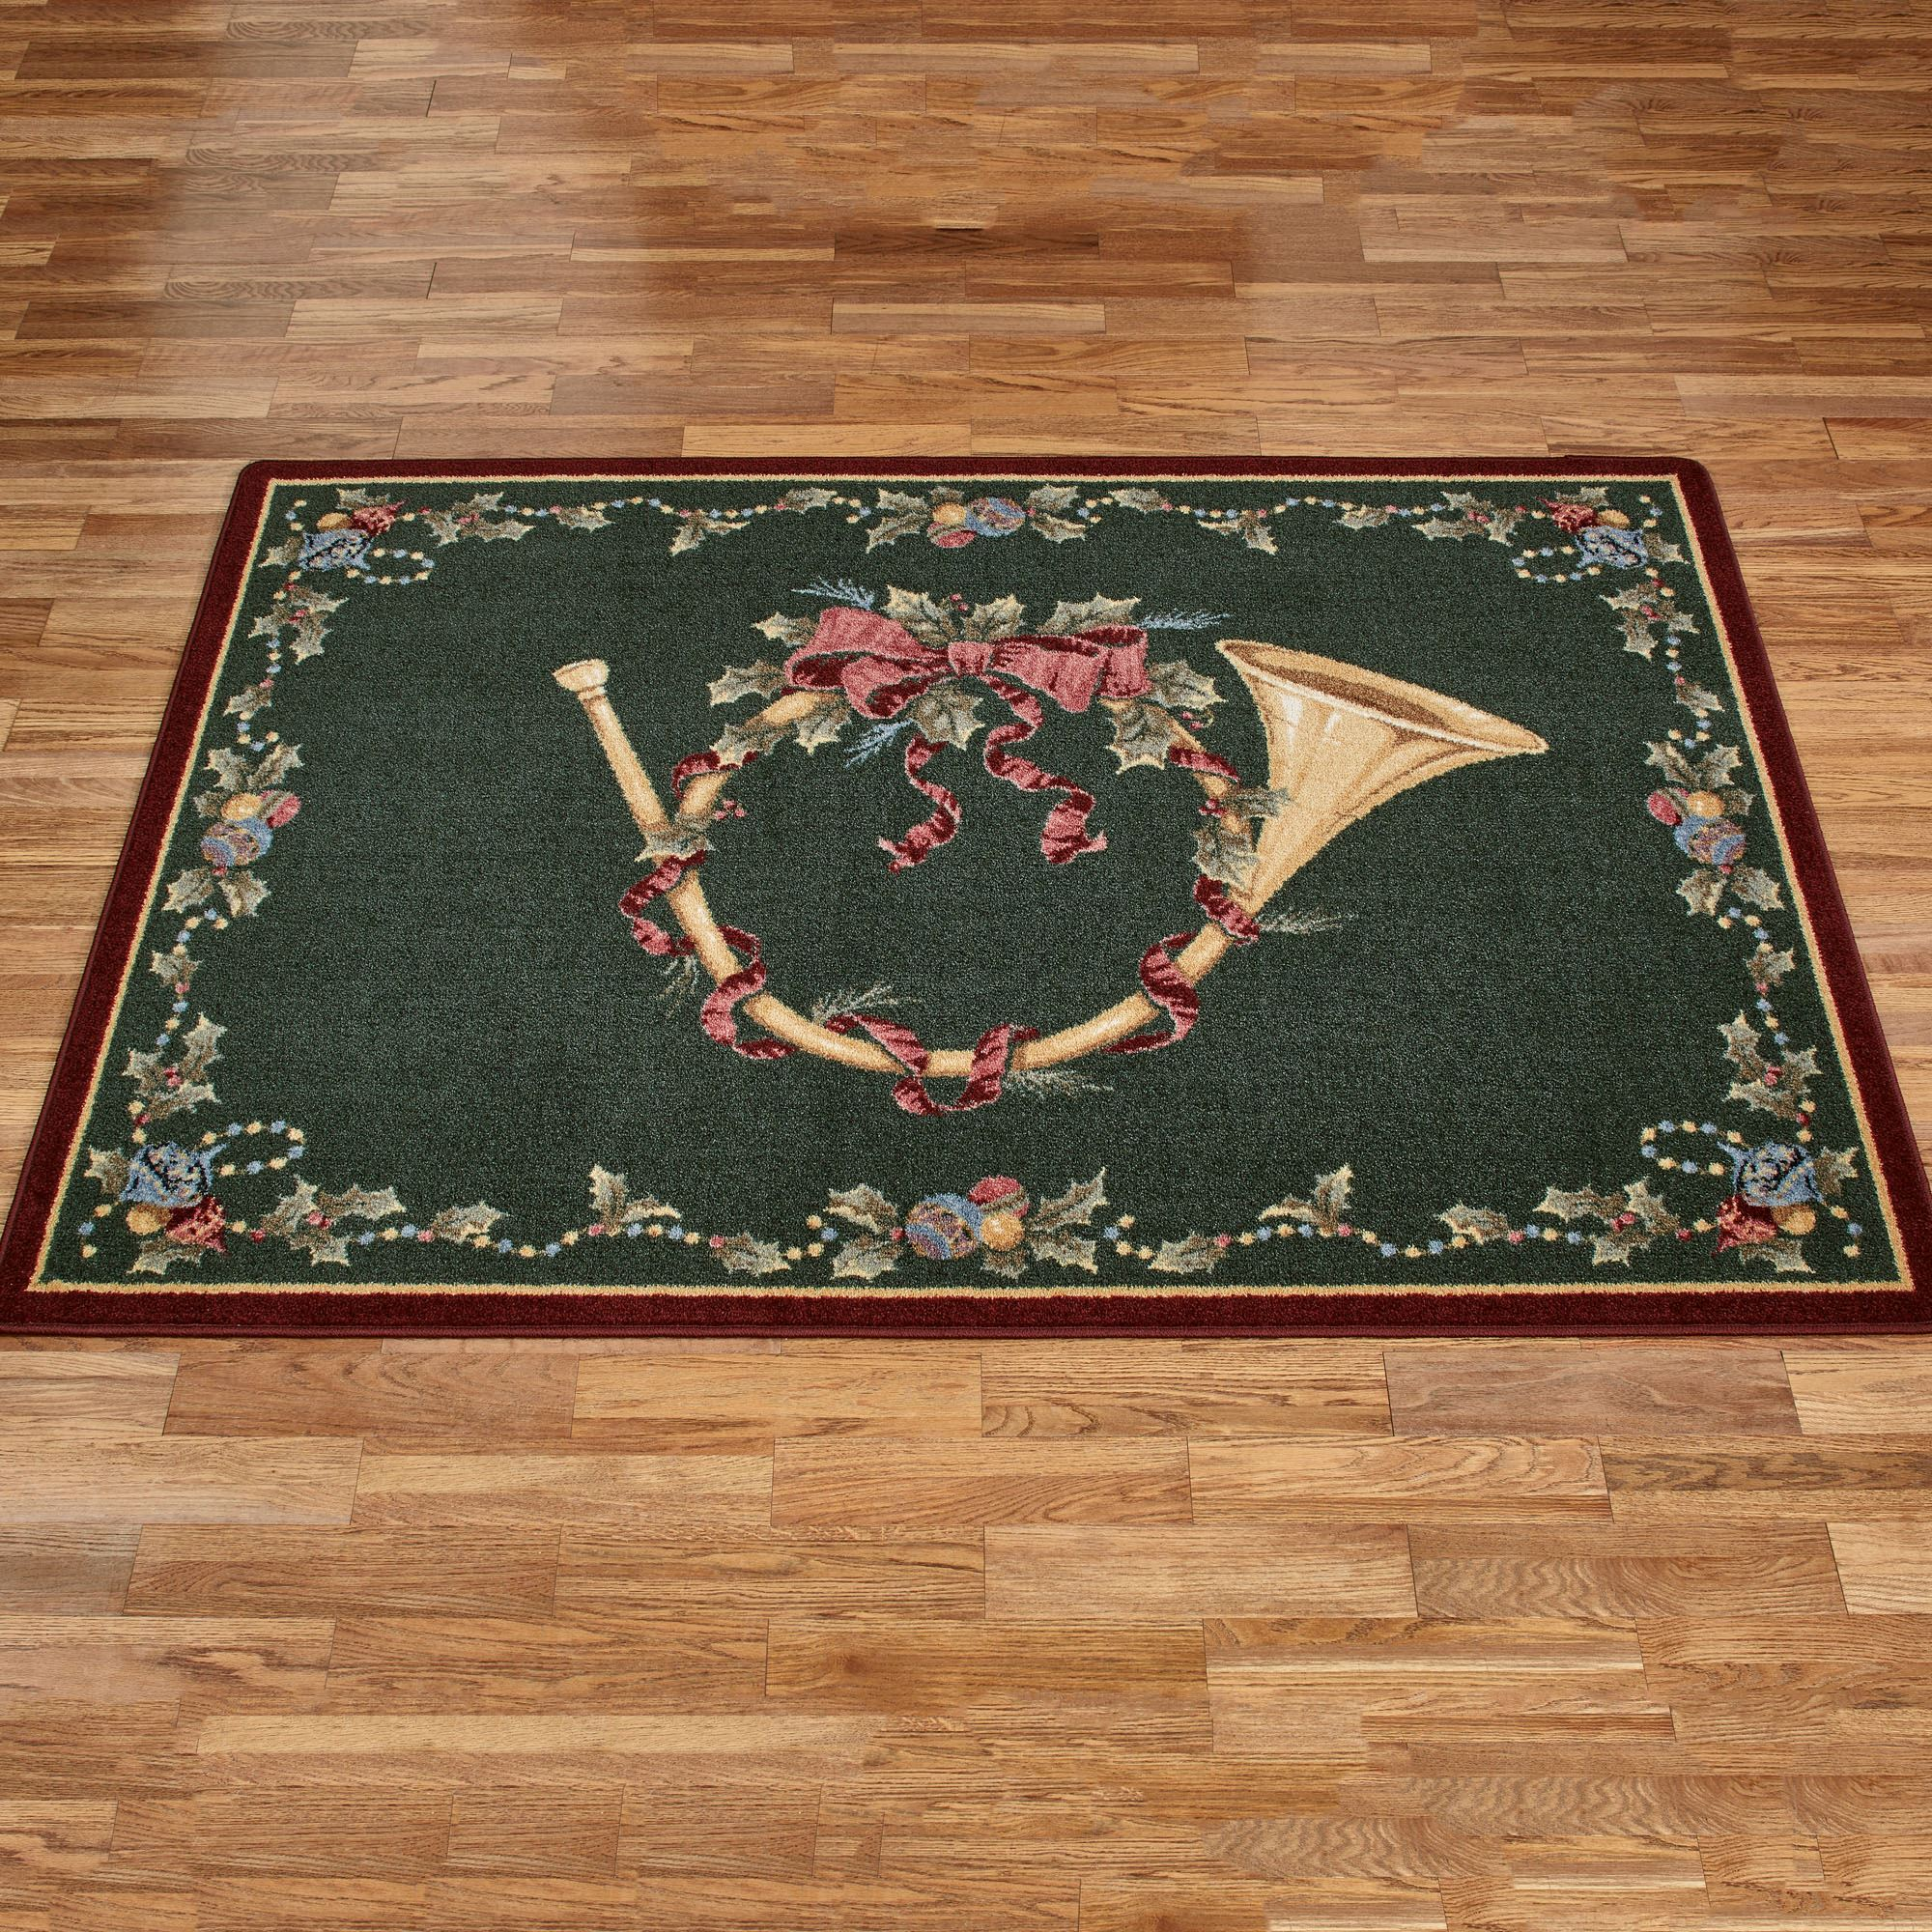 Milliken Carpets French Horn Dark Green Holiday Area Rugs